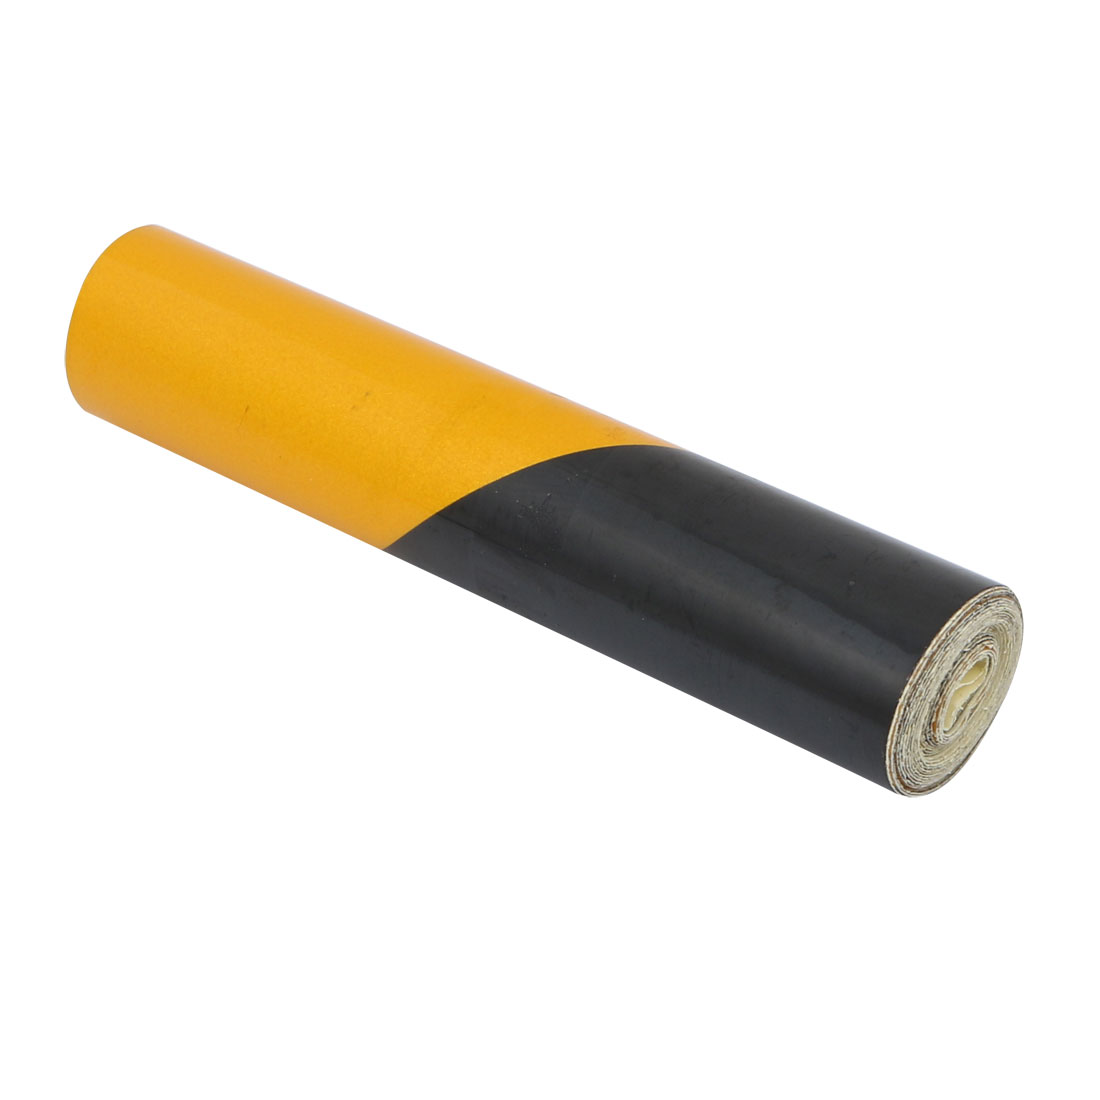 1M Length 10cm Width Single Sided Adhesive Reflective Warning Tape Yellow Black